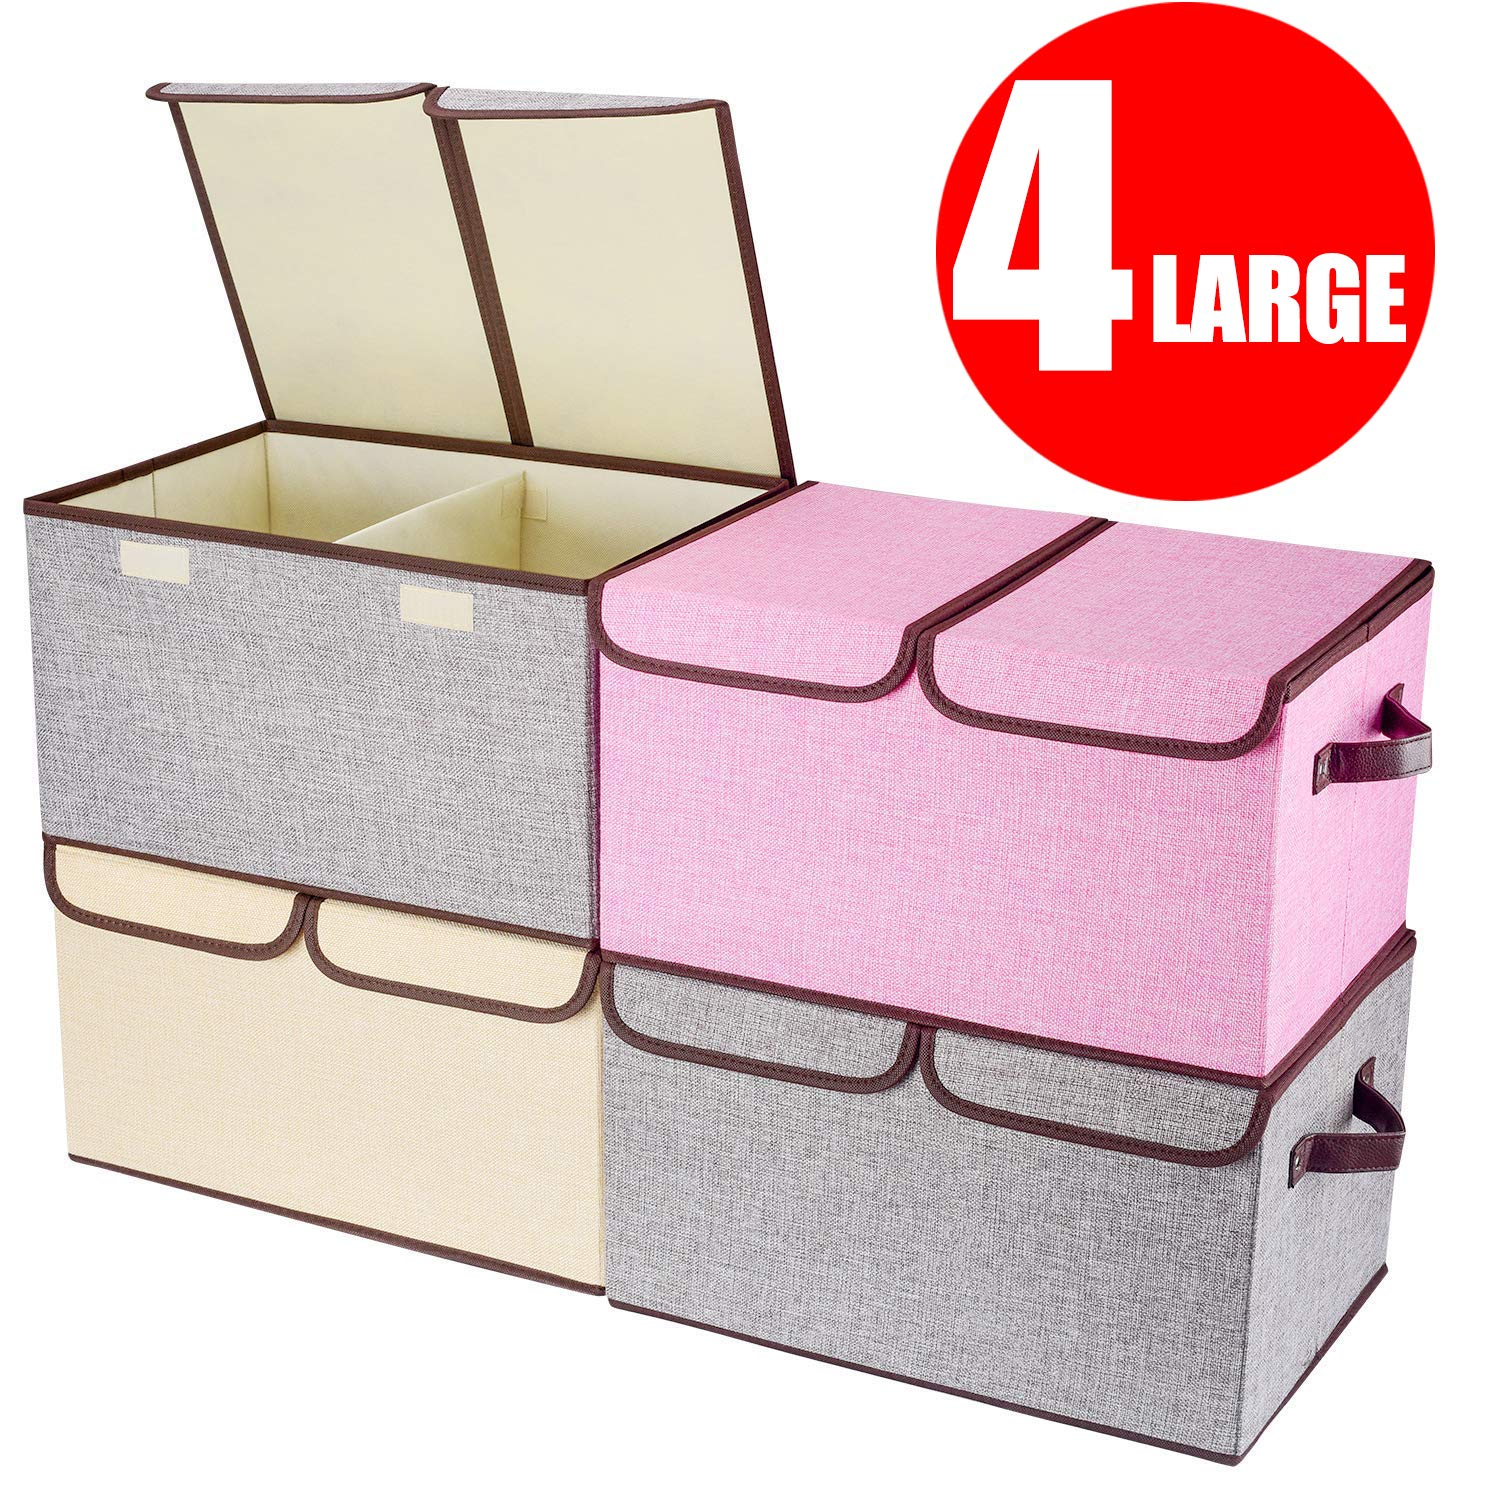 "Larger Storage Cubes [4-Pack] Senbowe Linen Fabric Foldable Collapsible Storage Cube Bin Organizer Basket with Lid, Handles, Removable Divider For Home, Office, Nursery, Closet - (17.7 x 11.8 x 9.8"")"